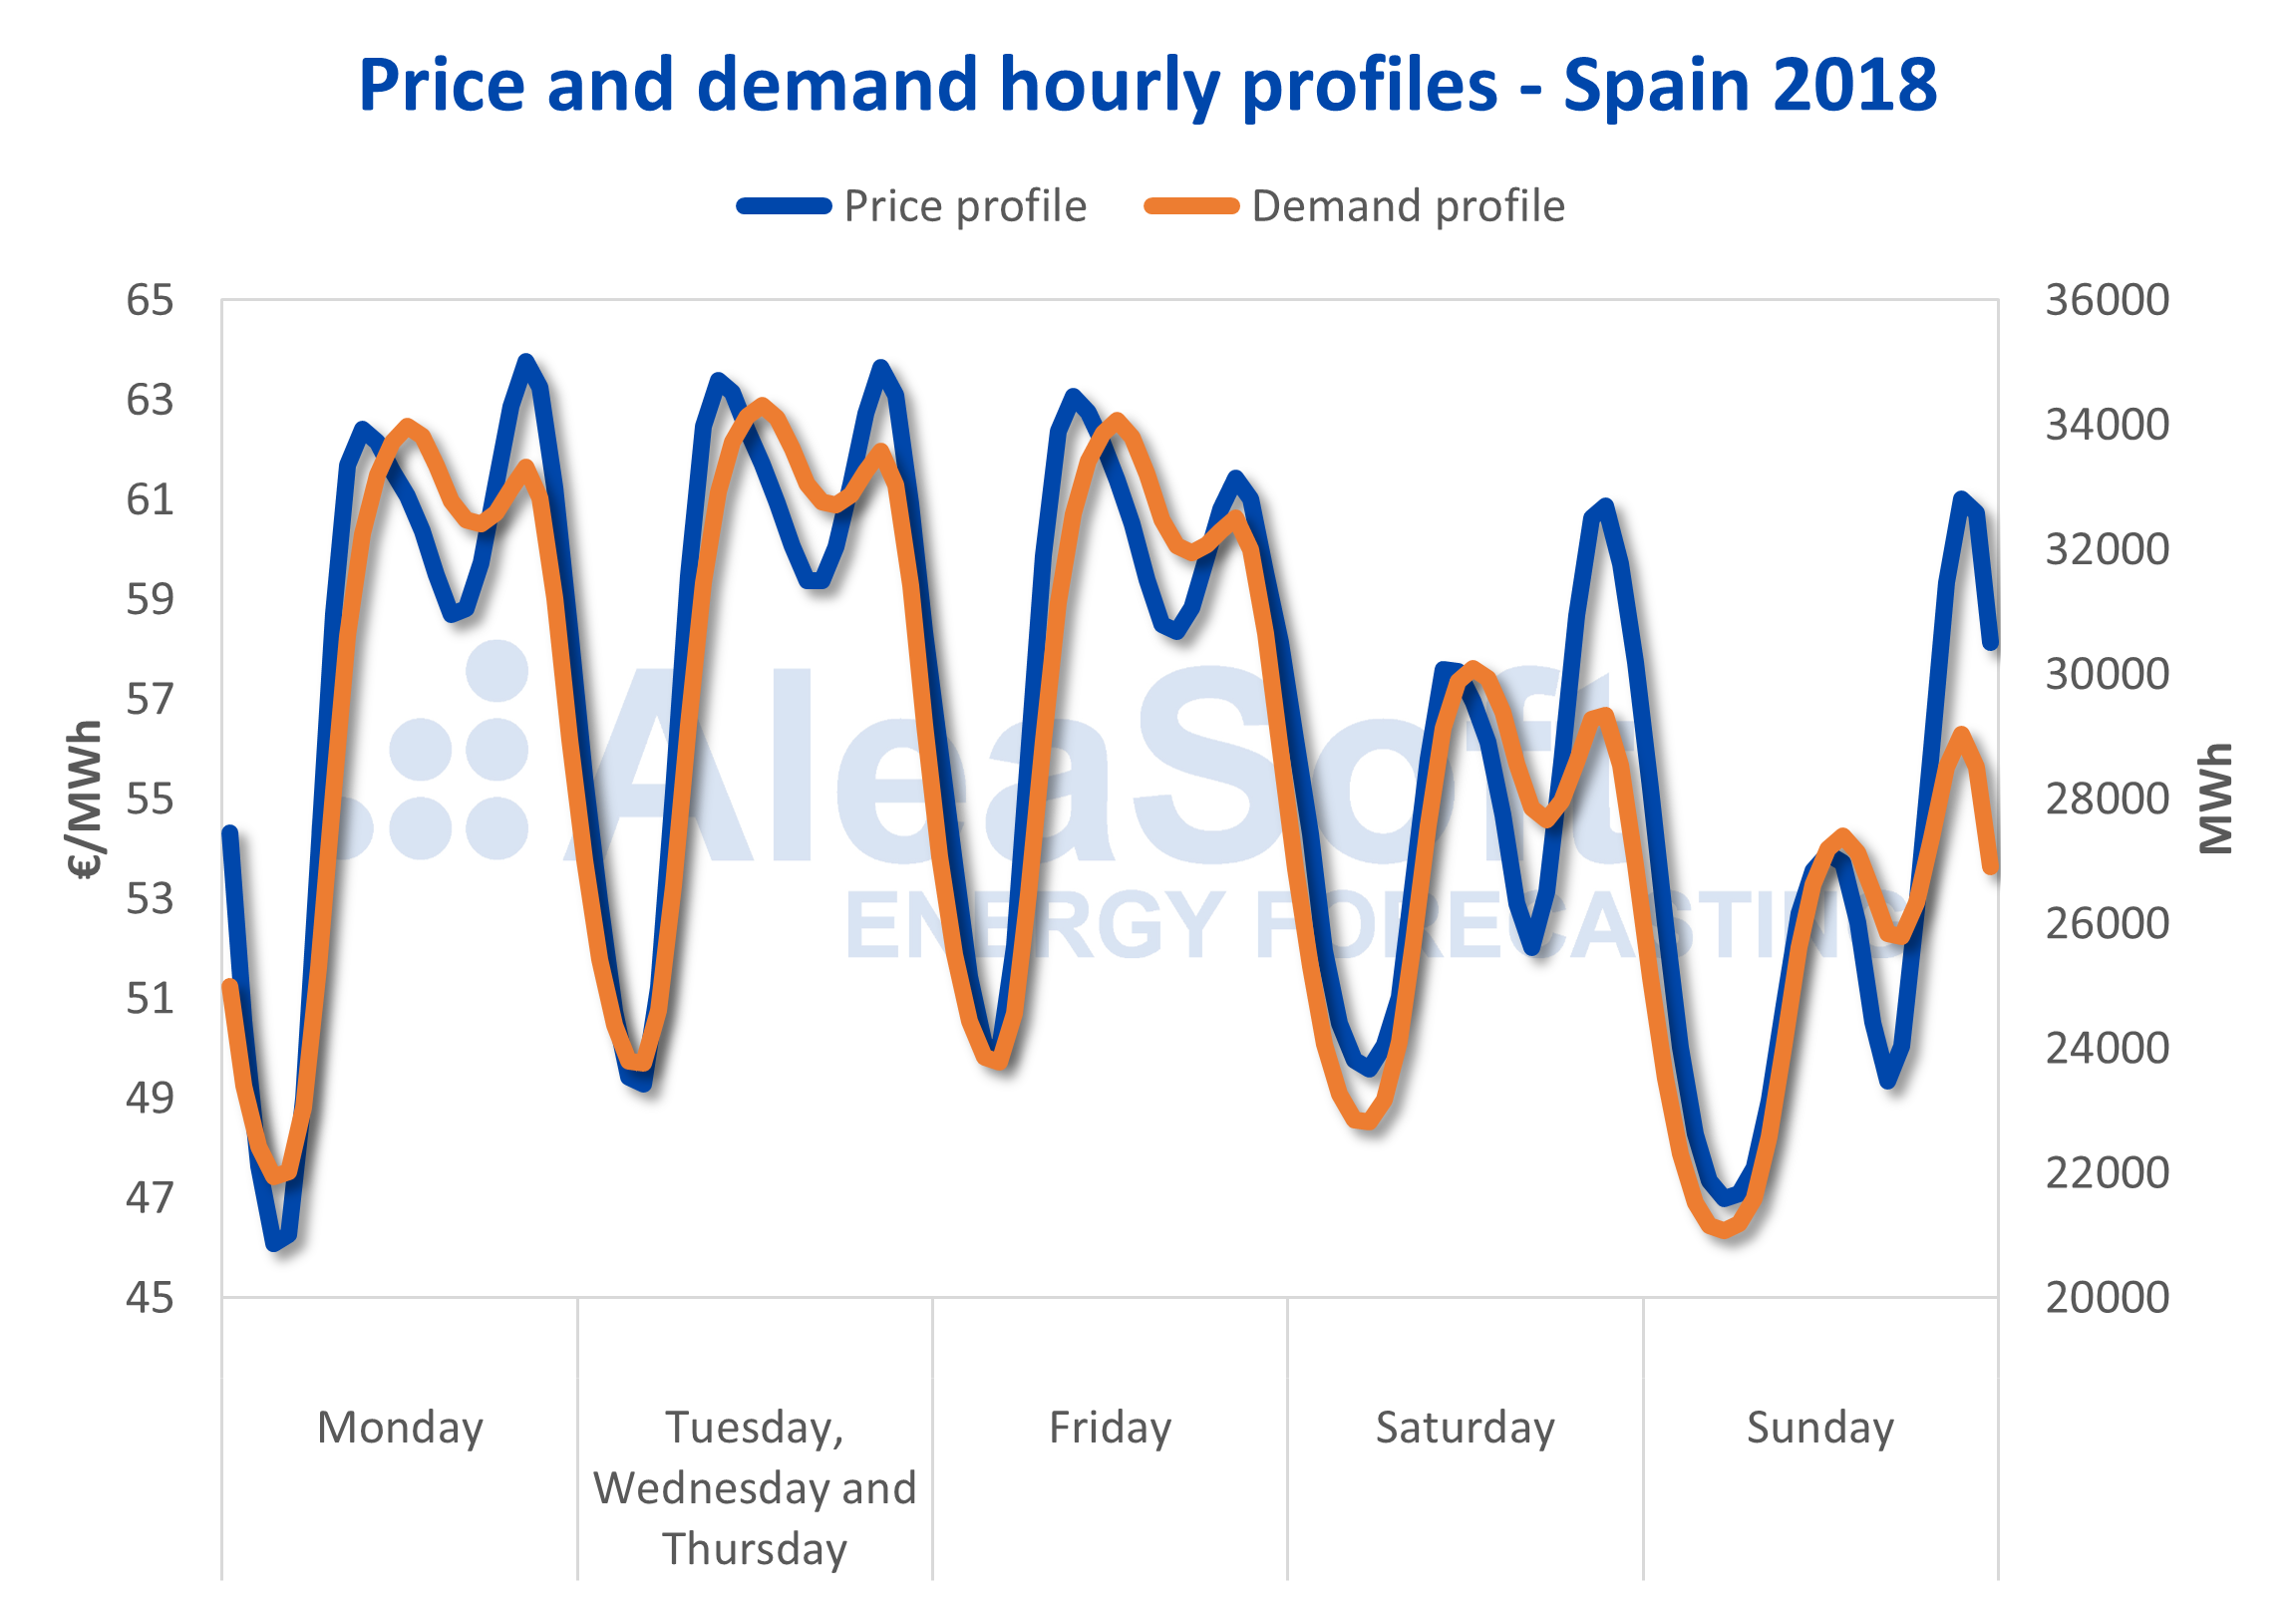 AleaSoft - Profile price demand electricity Spain 2018